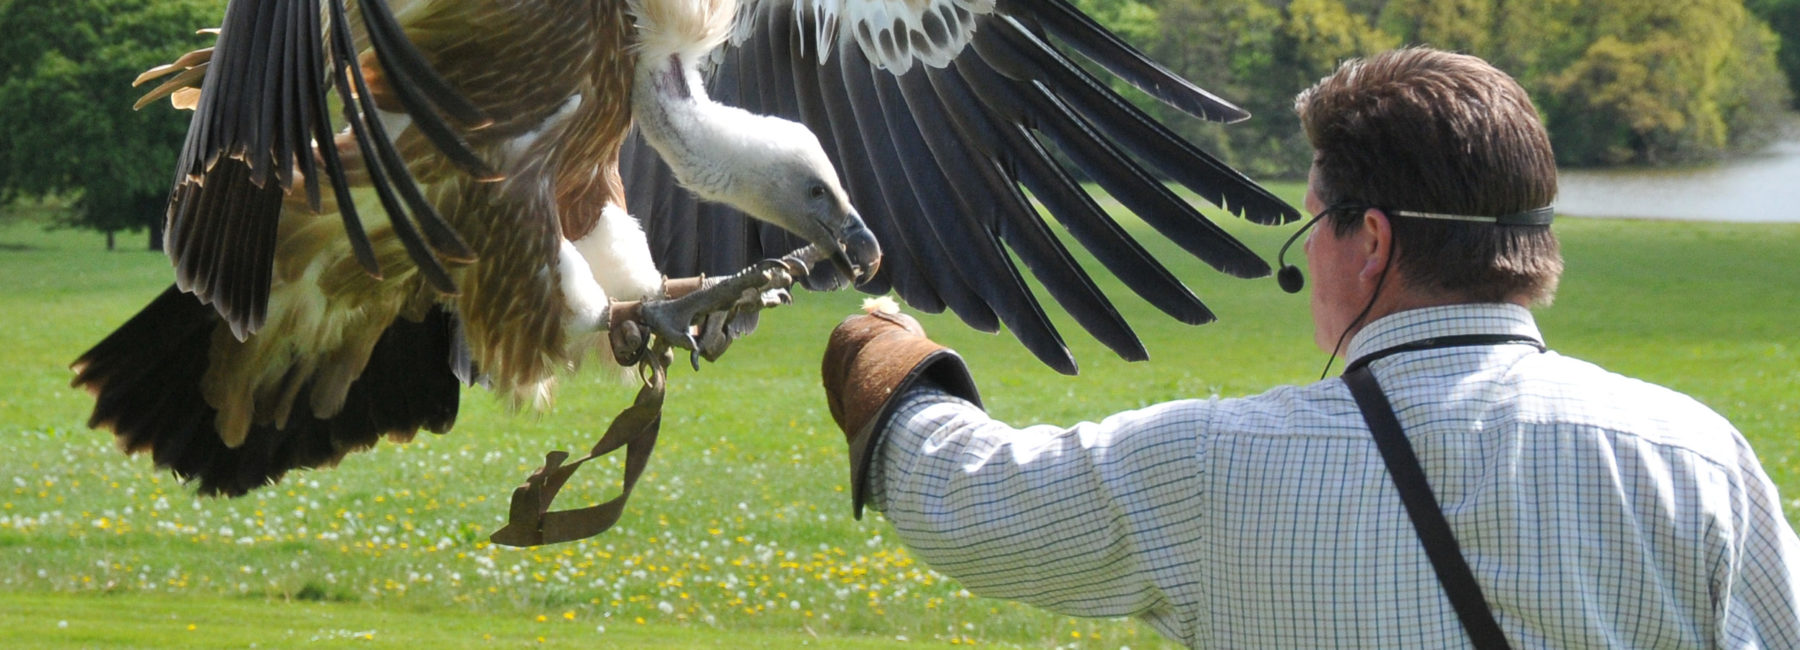 A vulture, landing on the outstretched arm of a man